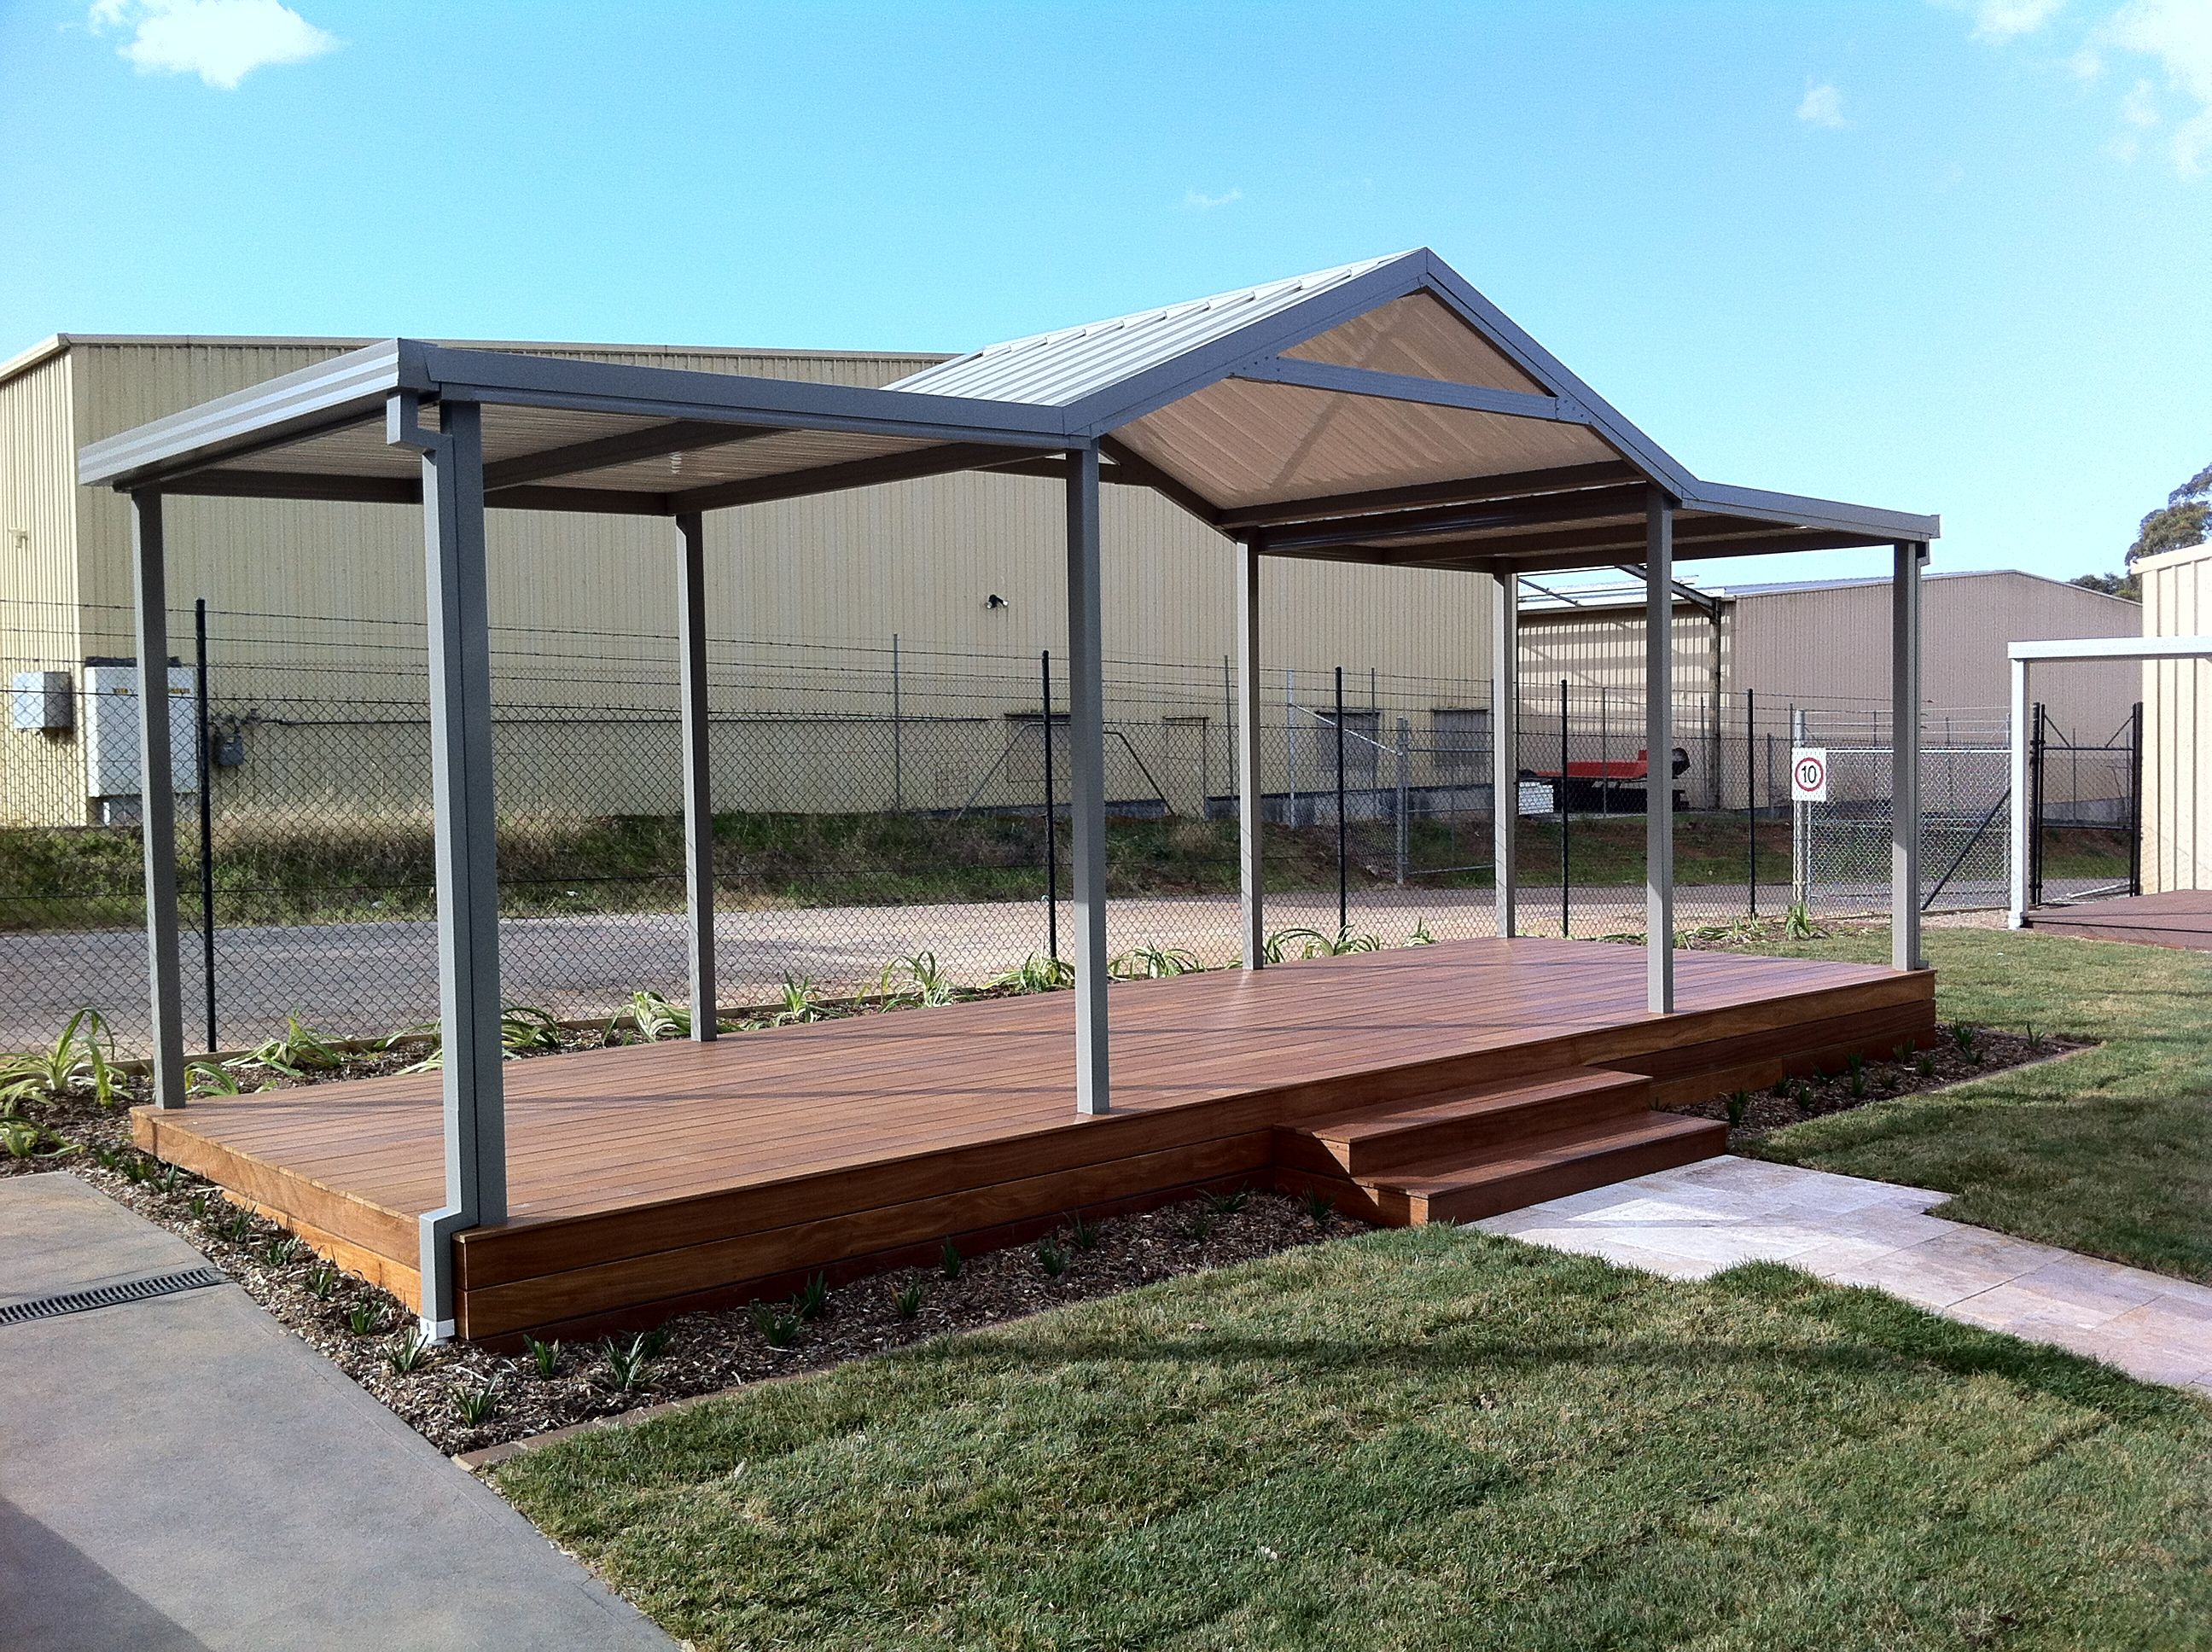 boxspan deck frame with tonka hardwood decking boards and steel frame pergola over photo taken